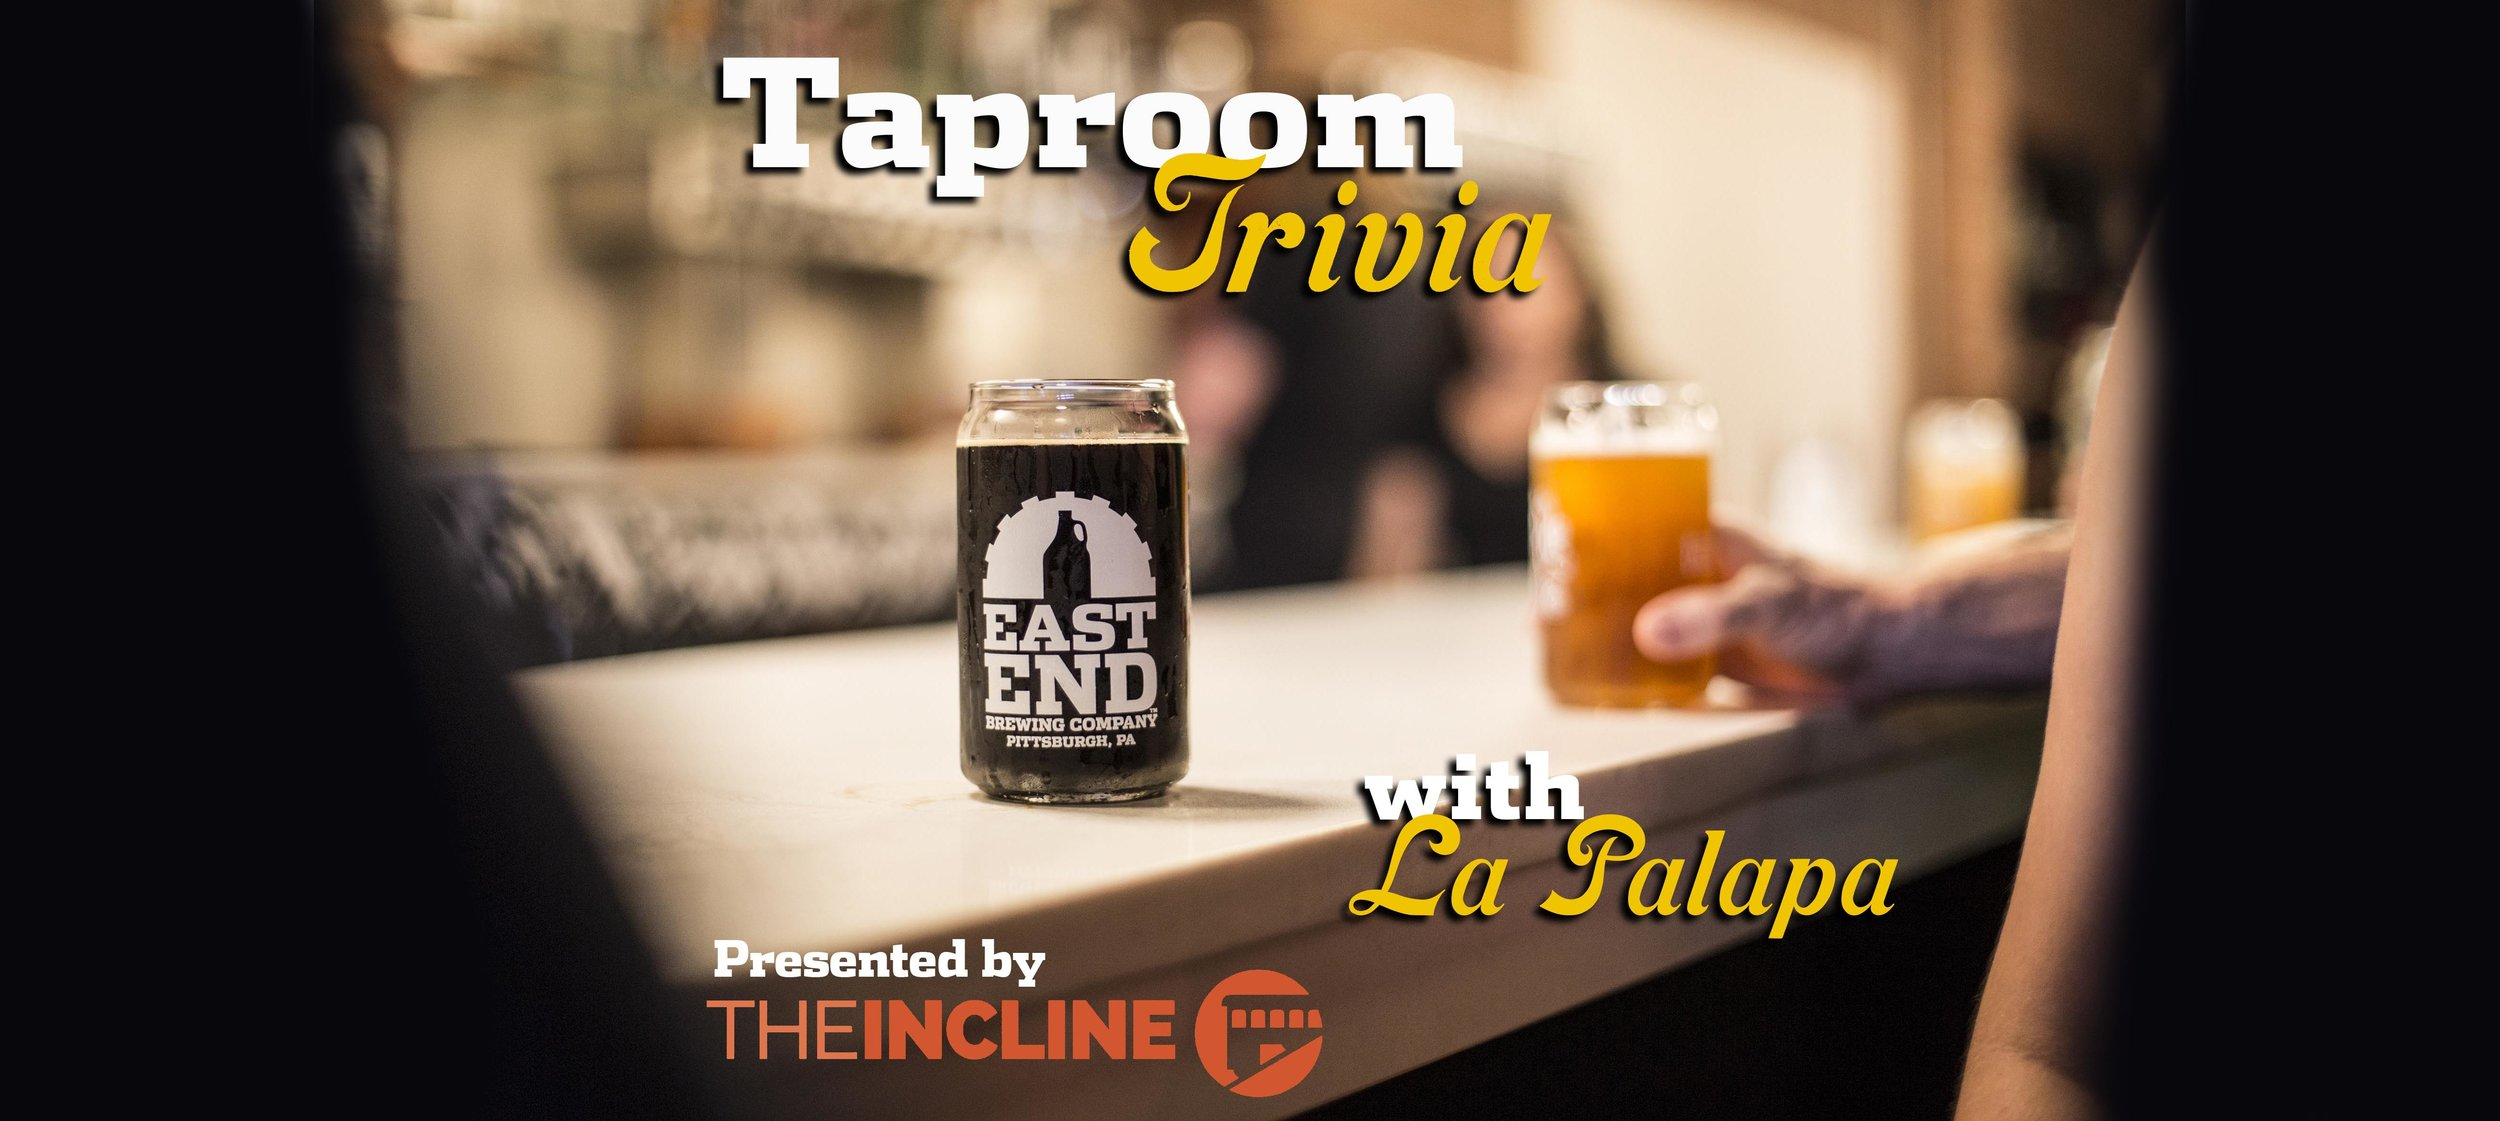 That's right, the Taproom in the Strip has its own trivia night! Our Original Quizmaster Mark is back and we'll have food from our pals at La Palapa Mexican Kitchen. Join us from 6-8pm and form your team for a chance to win prizes and have a great time! Free to participate! Presented by  The Incline.